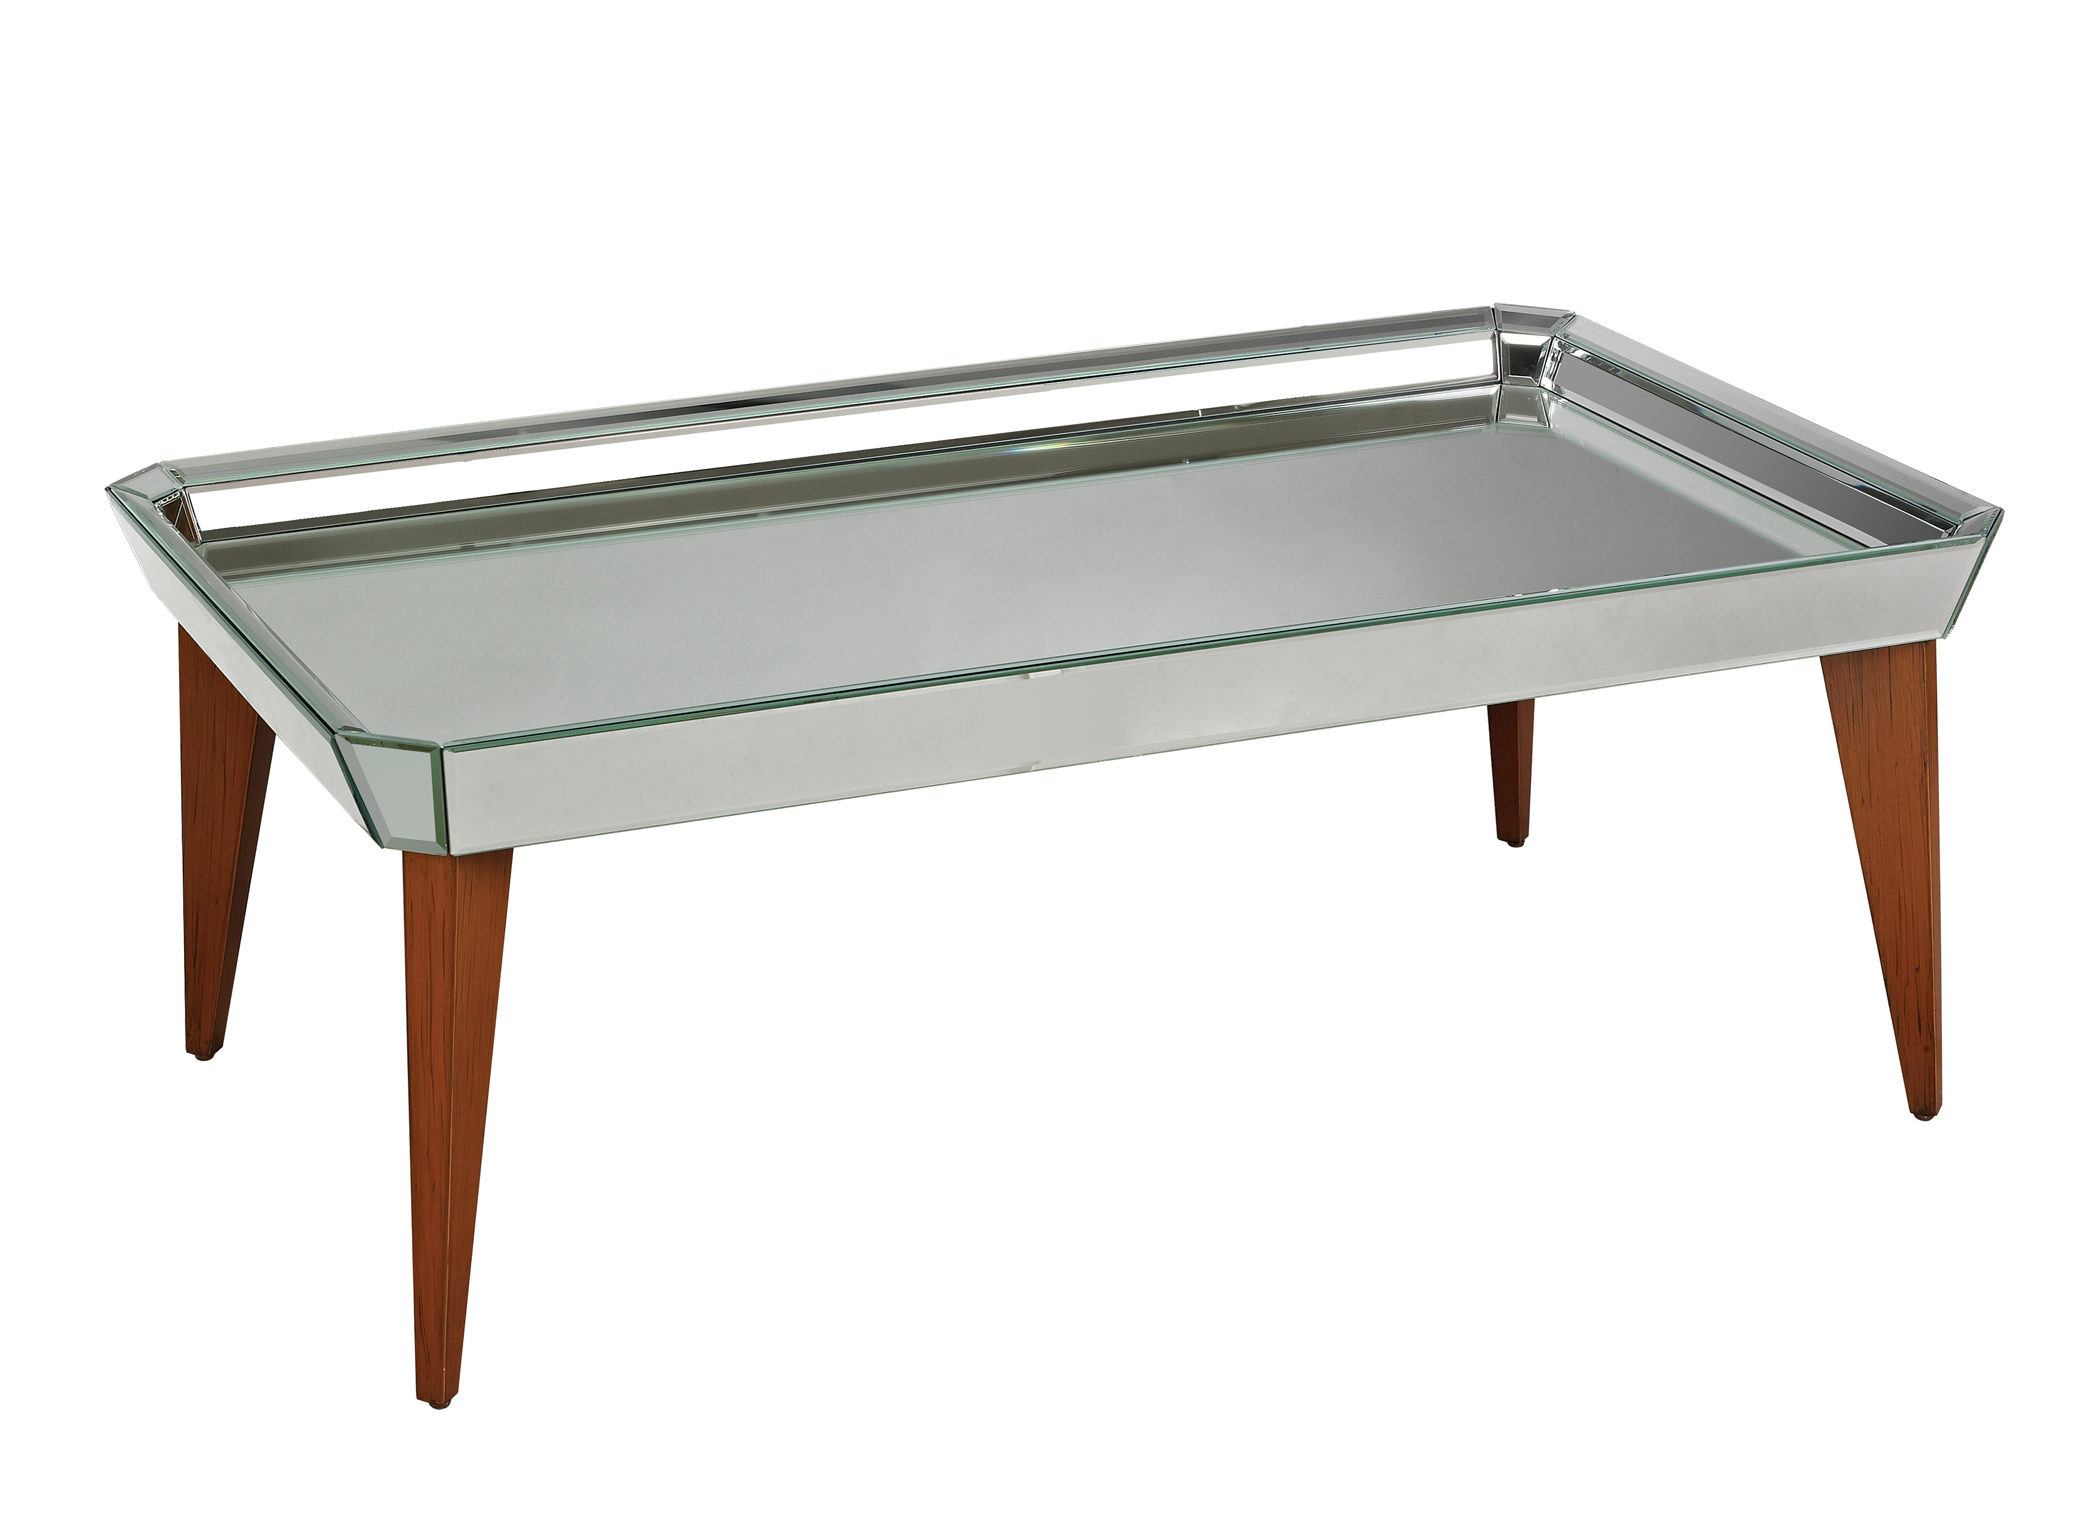 Mirrored coffee table tray roy home design Ottoman coffee table trays